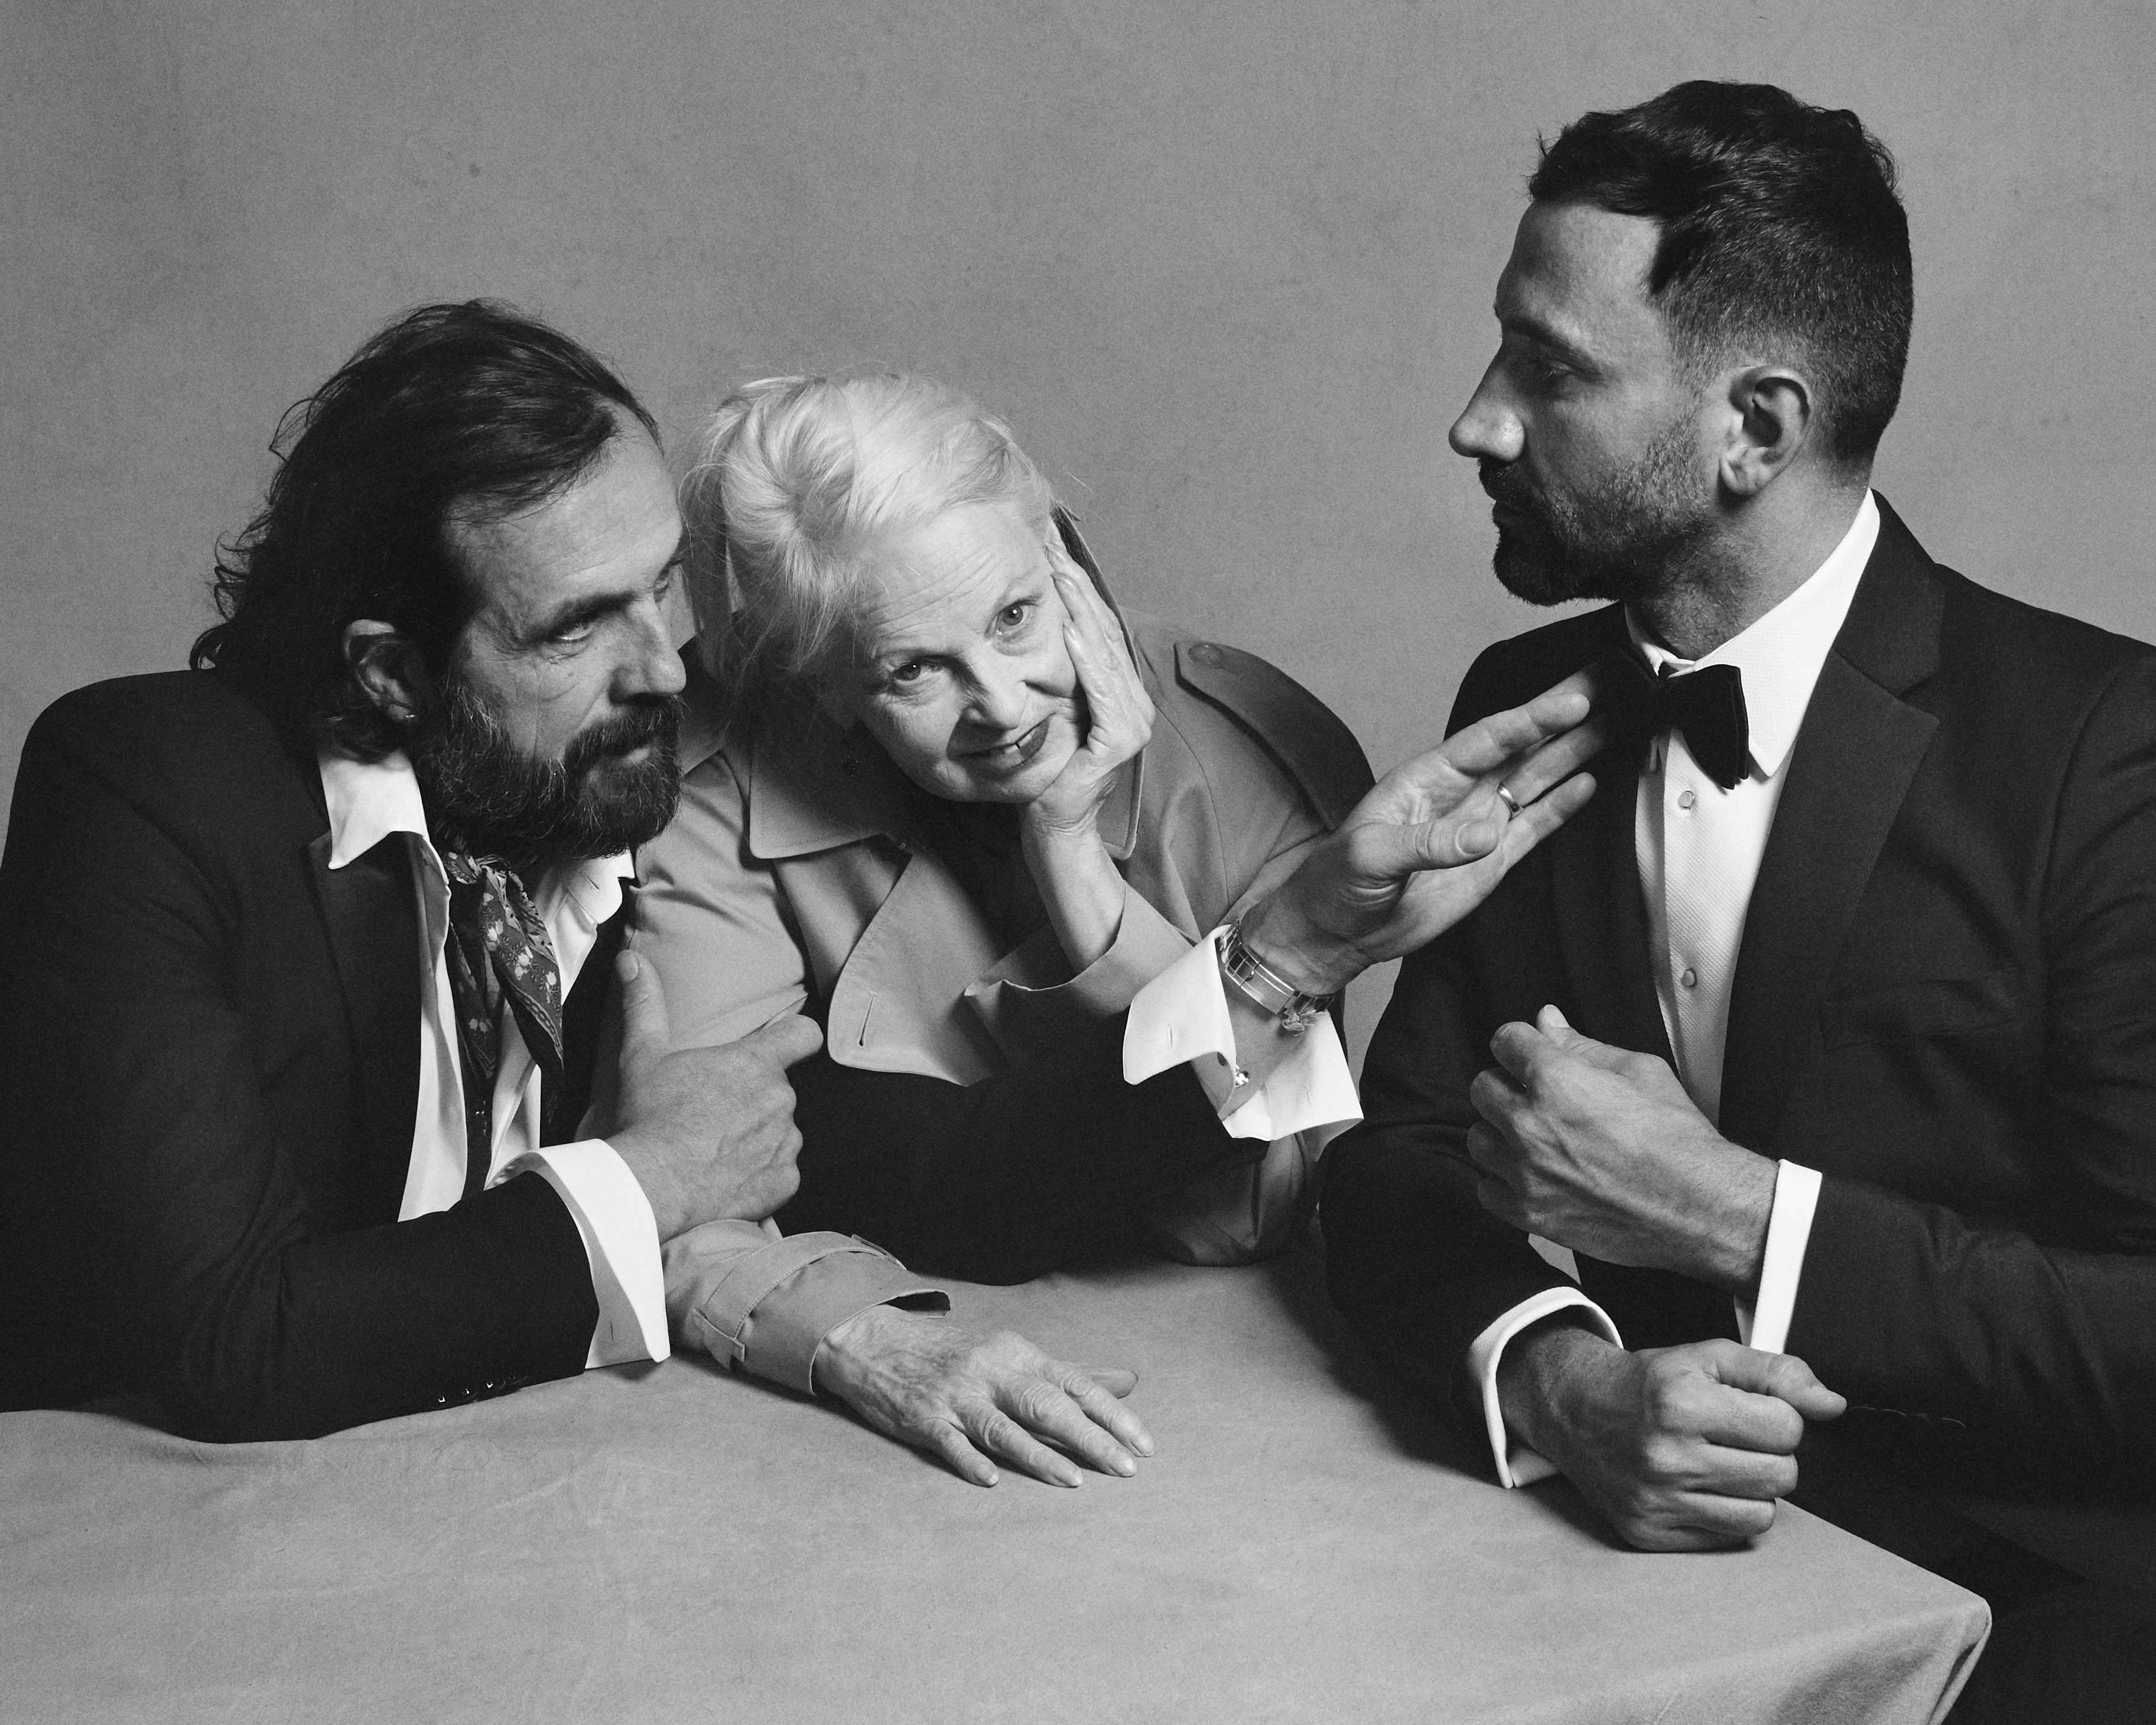 Portrait of Riccardo Tisci, Vivienne Westwood and Andreas Kronthaler c Courtesy of Burberry_ Brett Lloyd_003